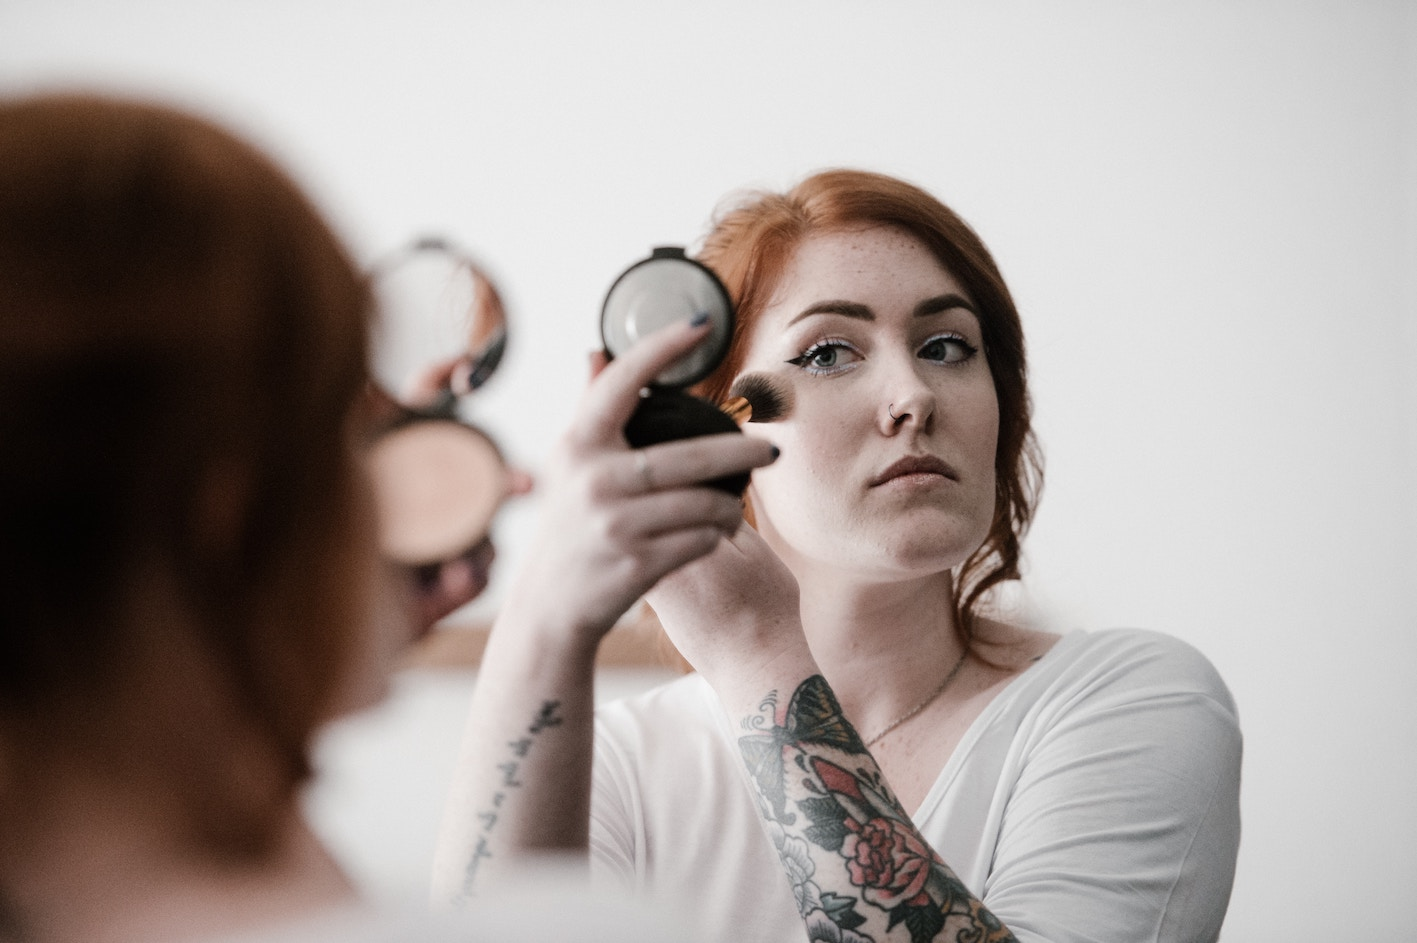 floortjeloves, THE LAZY GIRL'S BEAUTY GUIDE: TIPS FOR A LOW MAINTENANCE ROUTINE, THE LAZY GIRL'S BEAUTY GUIDE, beauty guide, guest post